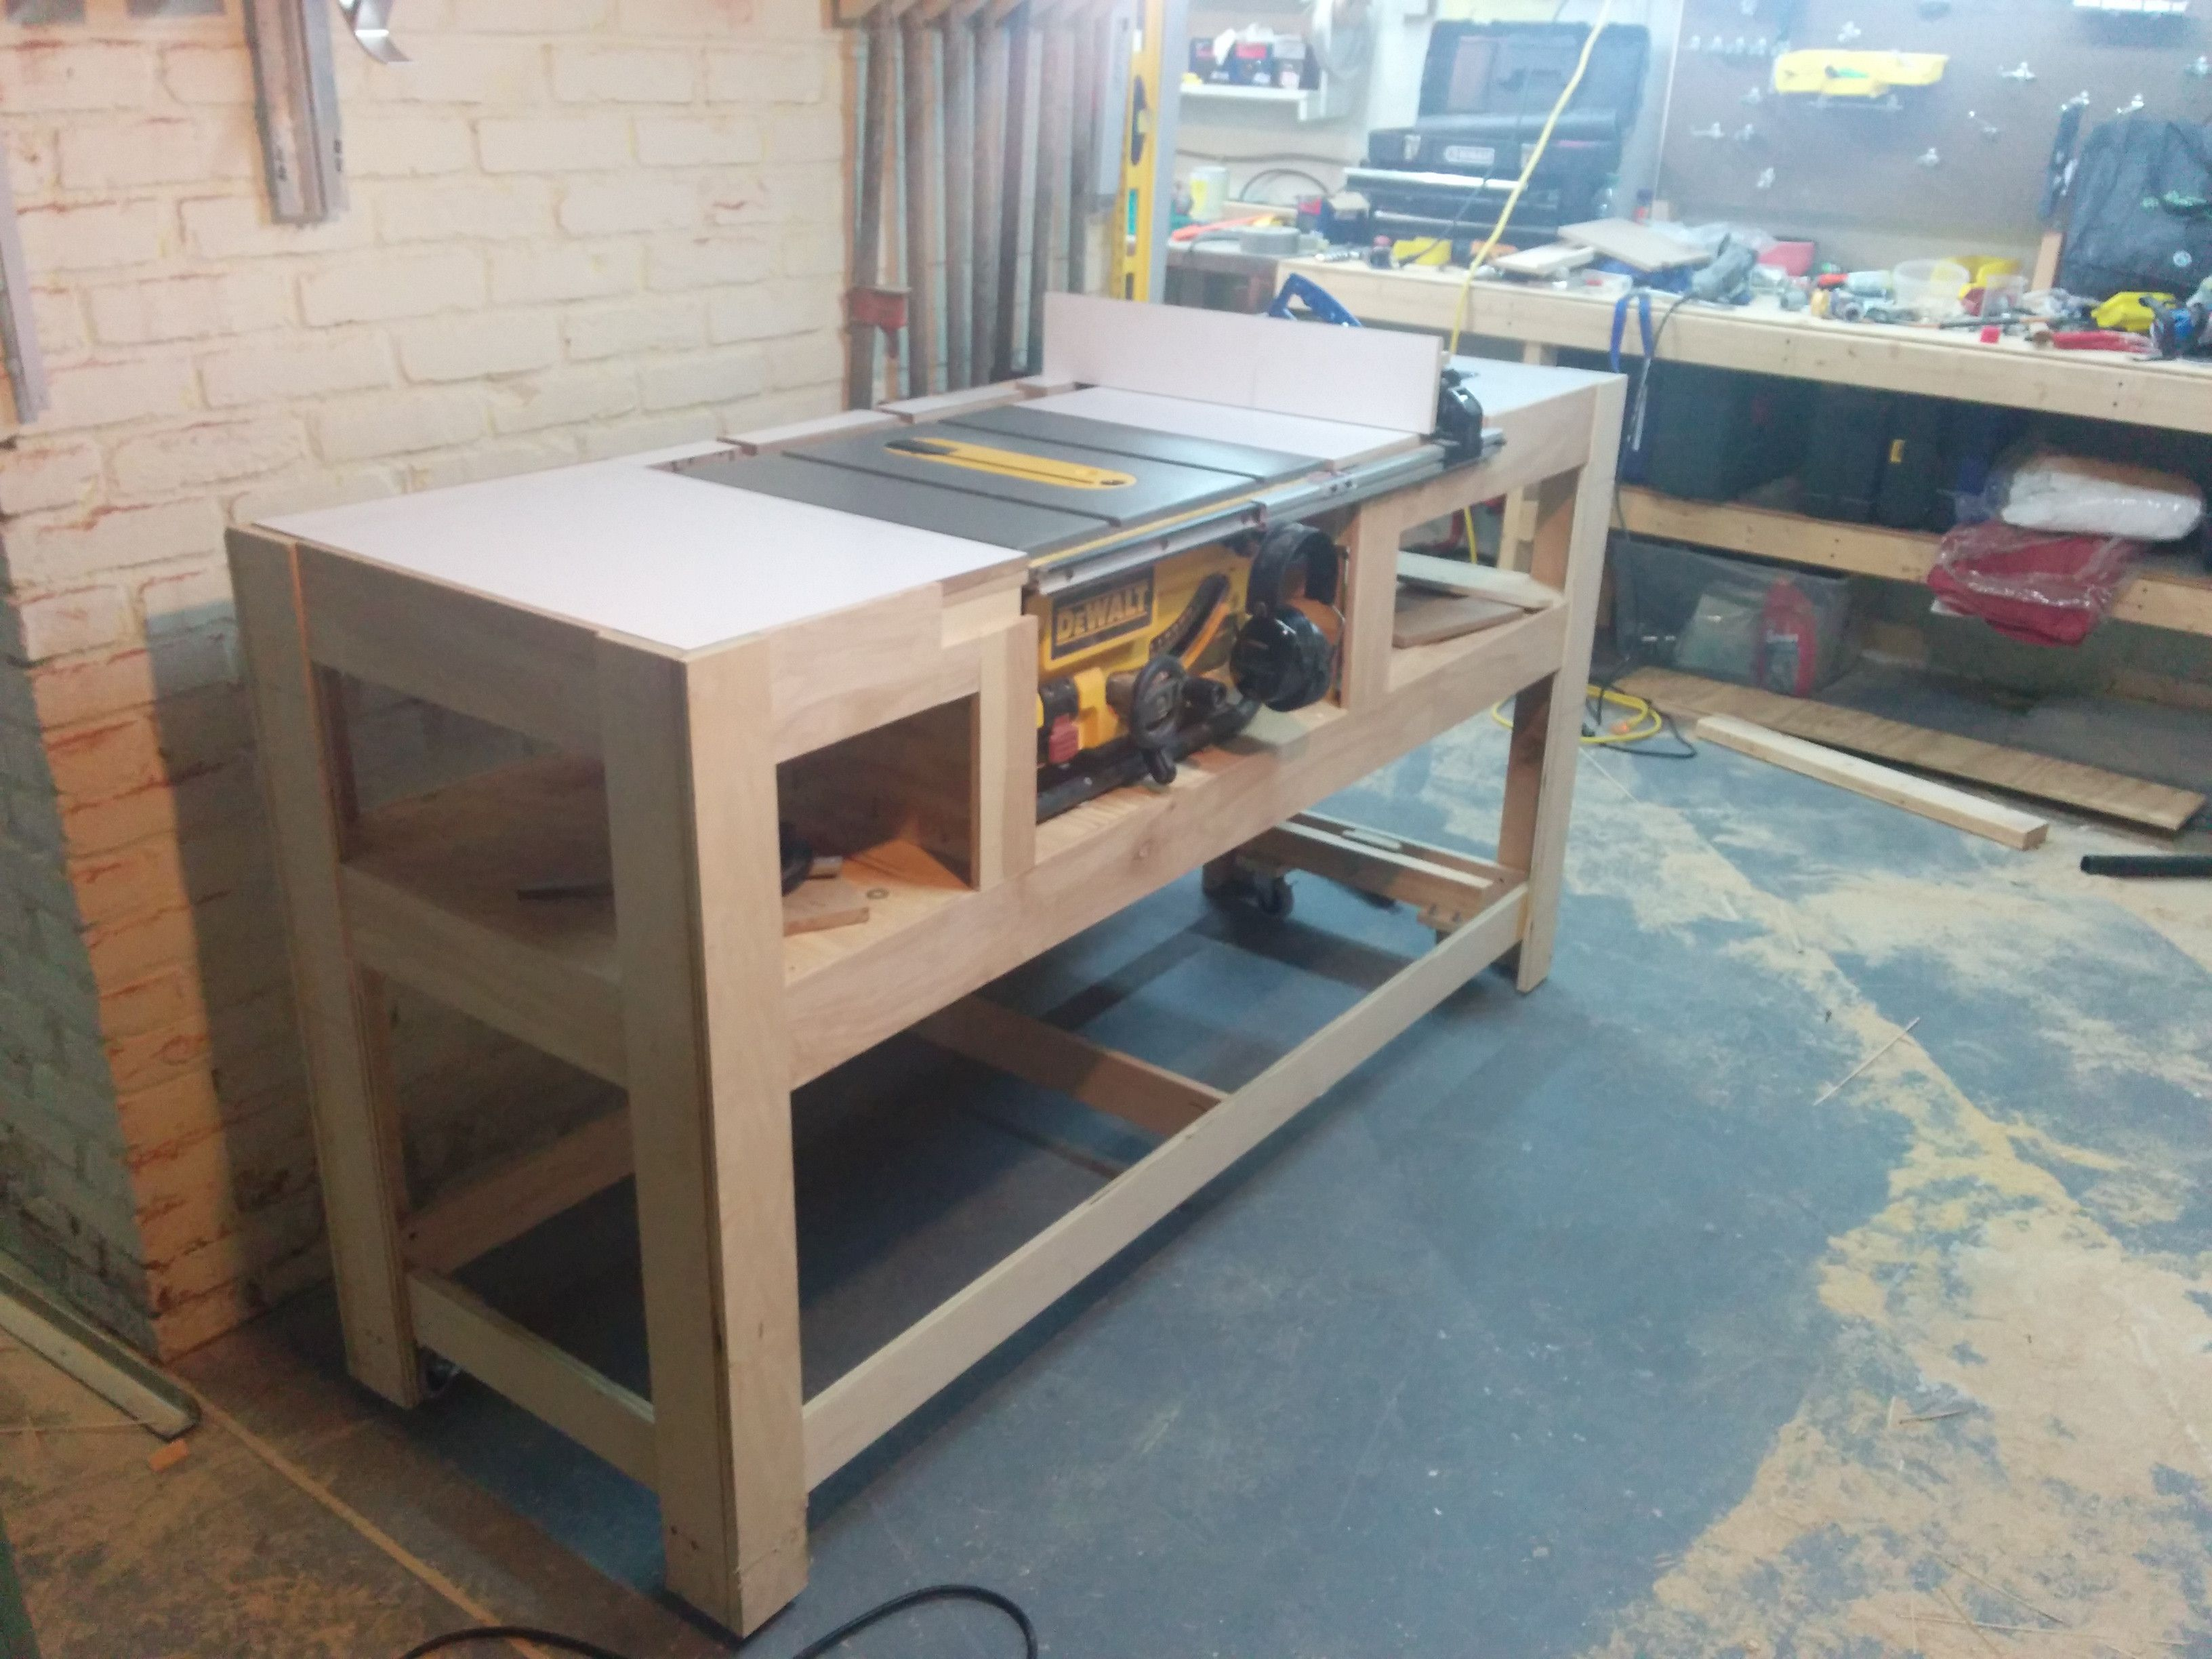 Table Saw Station Table Saw Station Table Saw Workbench Table Saw